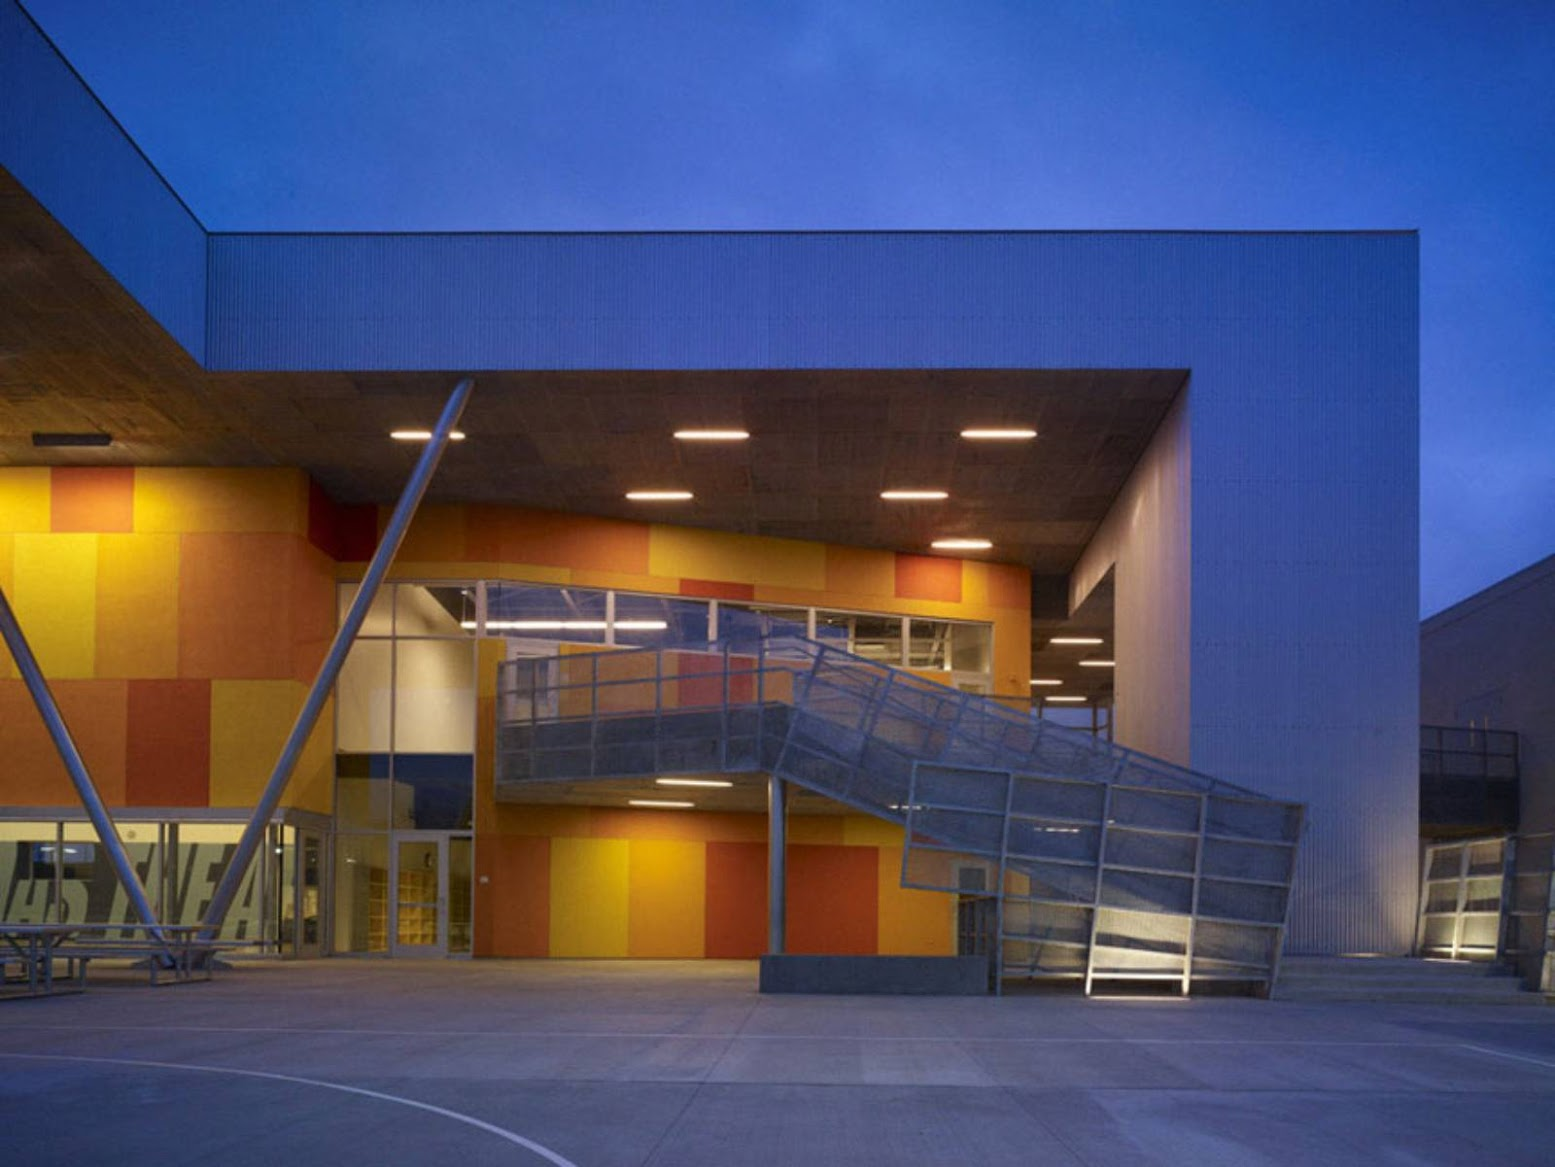 Los Angeles, California, Stati Uniti: [ST. THOMAS THE APOSTLE SCHOOL BY GRIFFIN ENRIGHT ARCHITECTS]